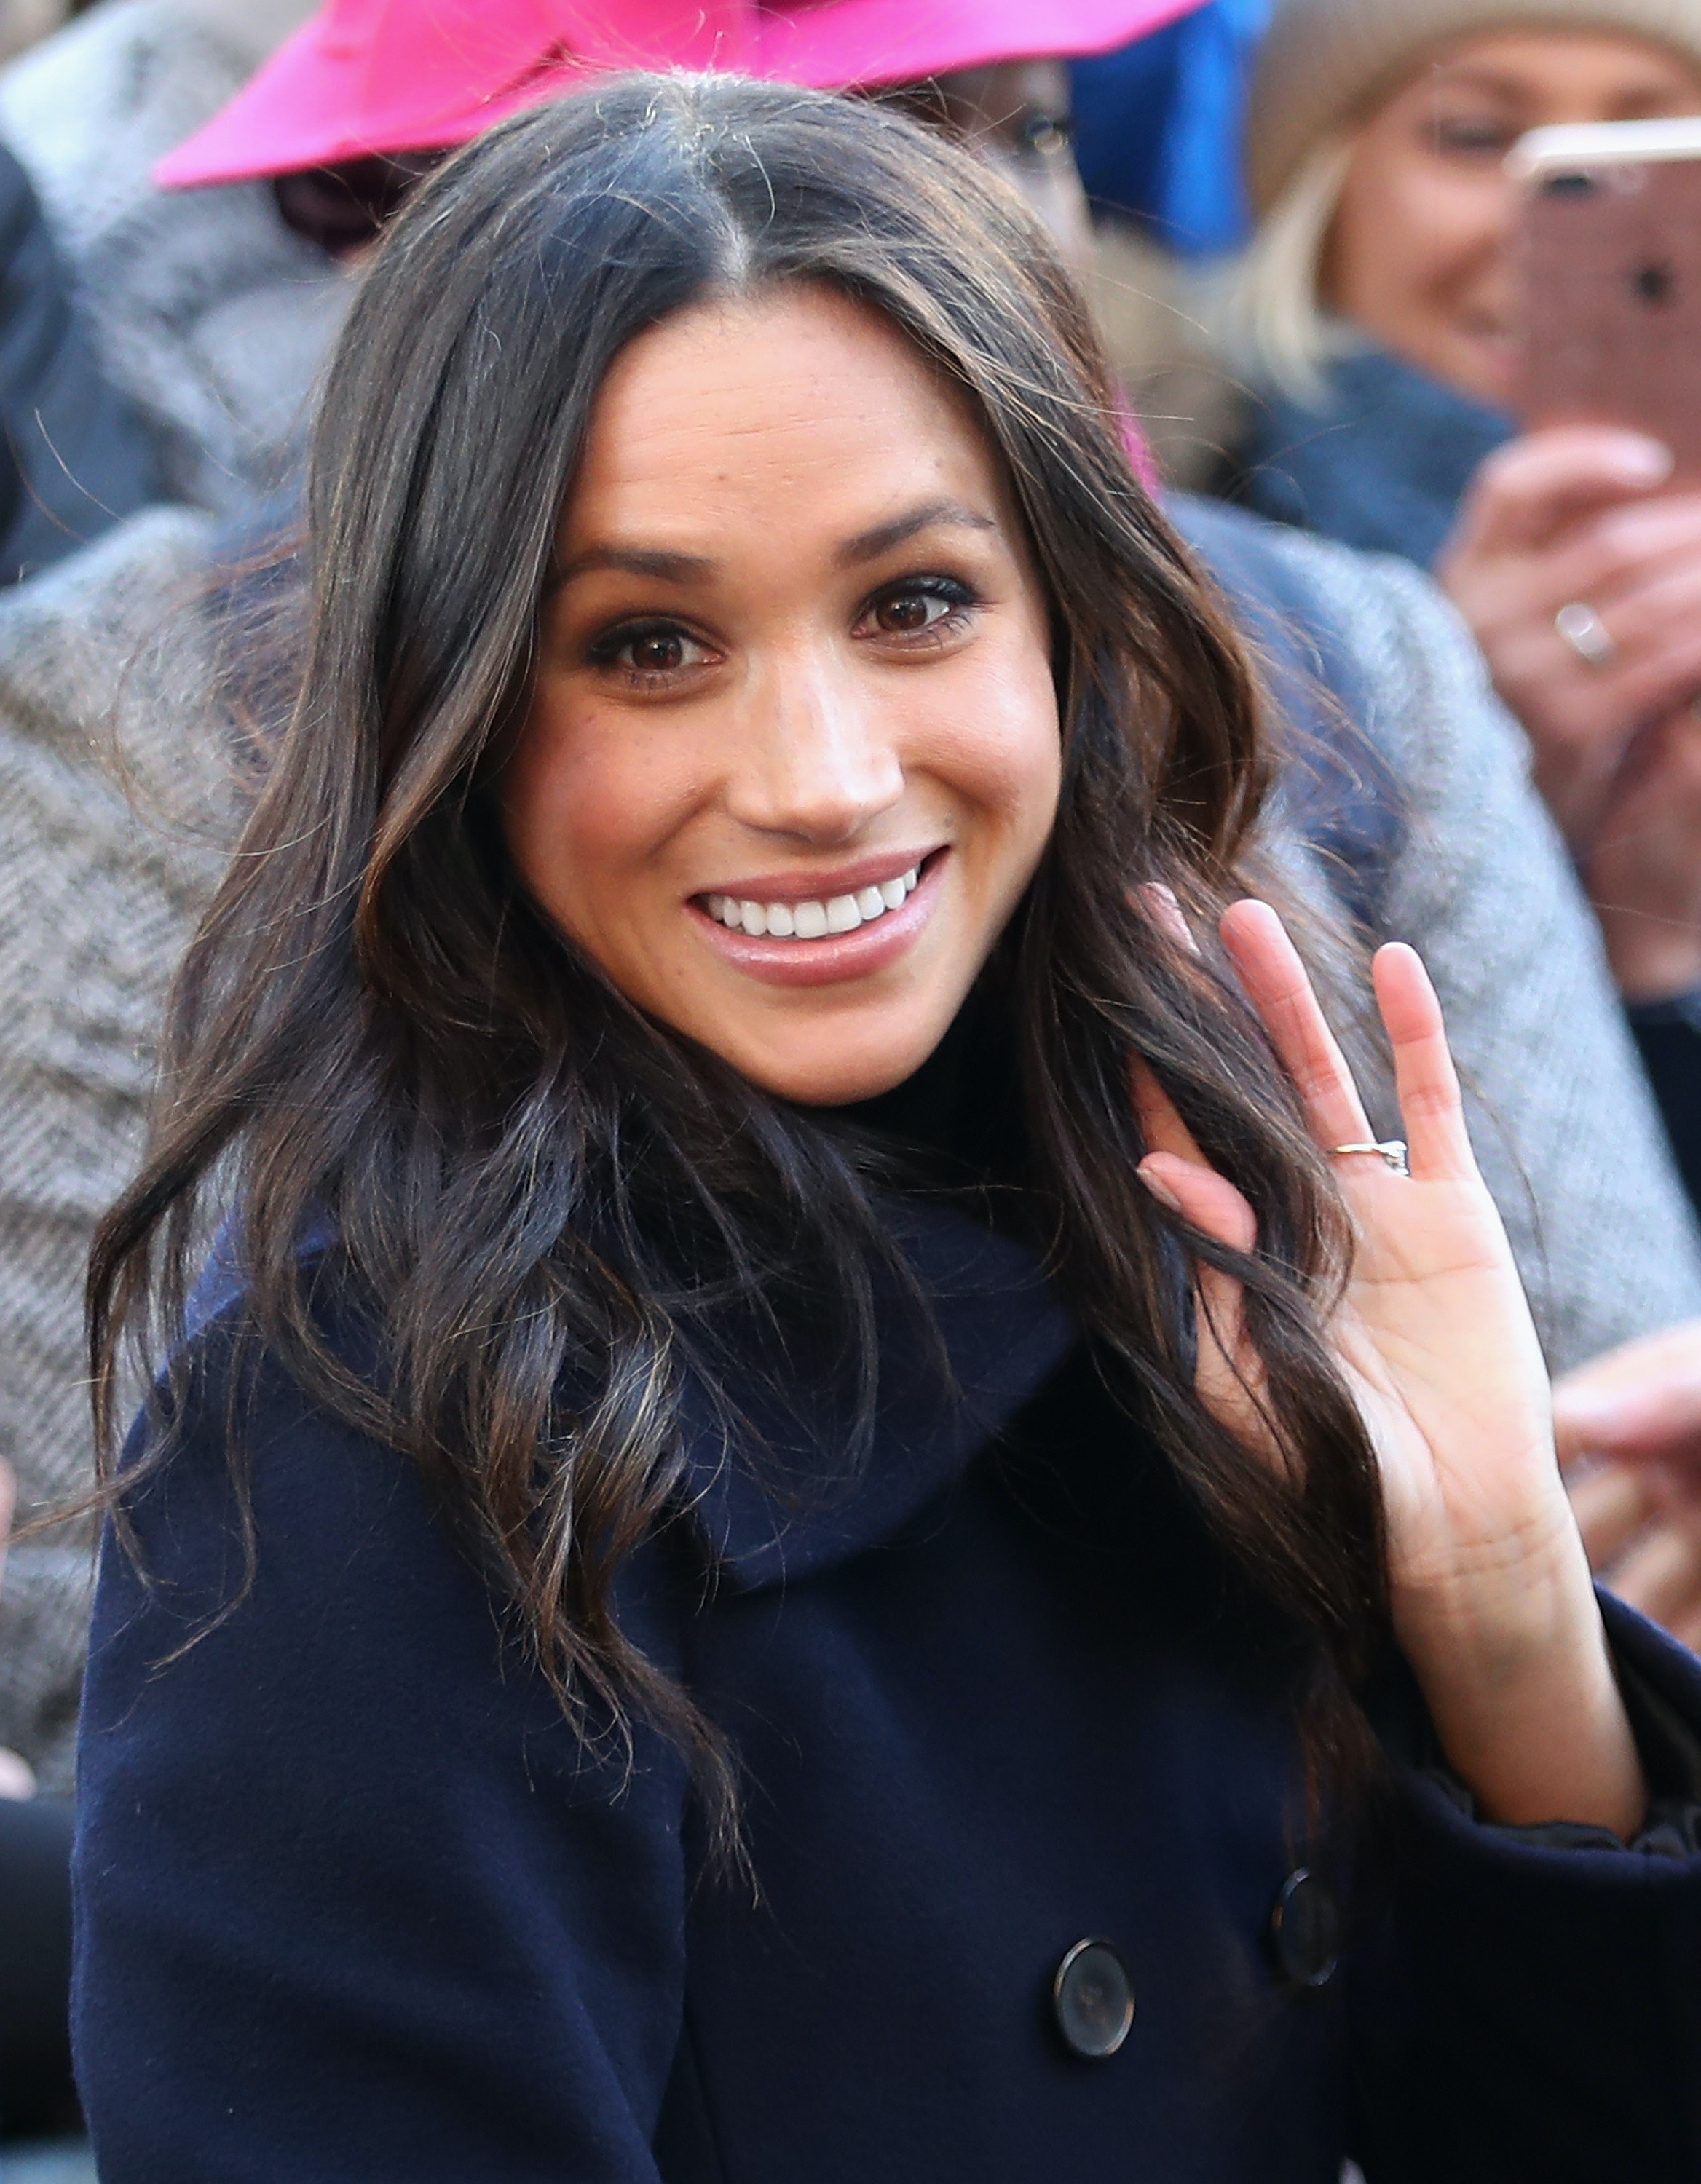 Meghan Markle Attends Public Yoga Class With 60 Strangers To Get Over Jet Lag In New York